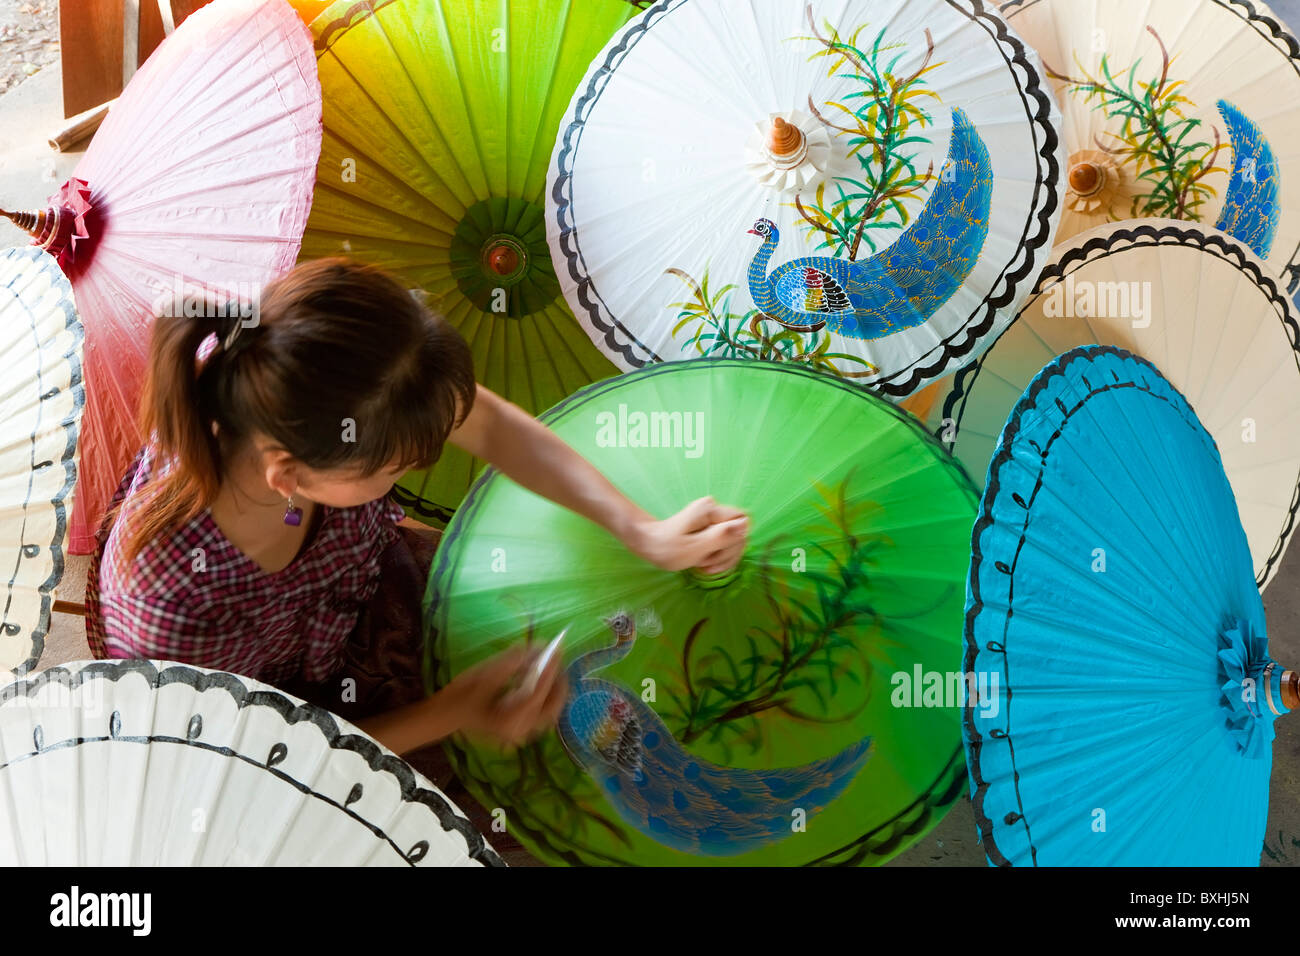 Painting parasols, Bo Sang, Umbrella Village nr Chaing Mai, Thailand - Stock Image